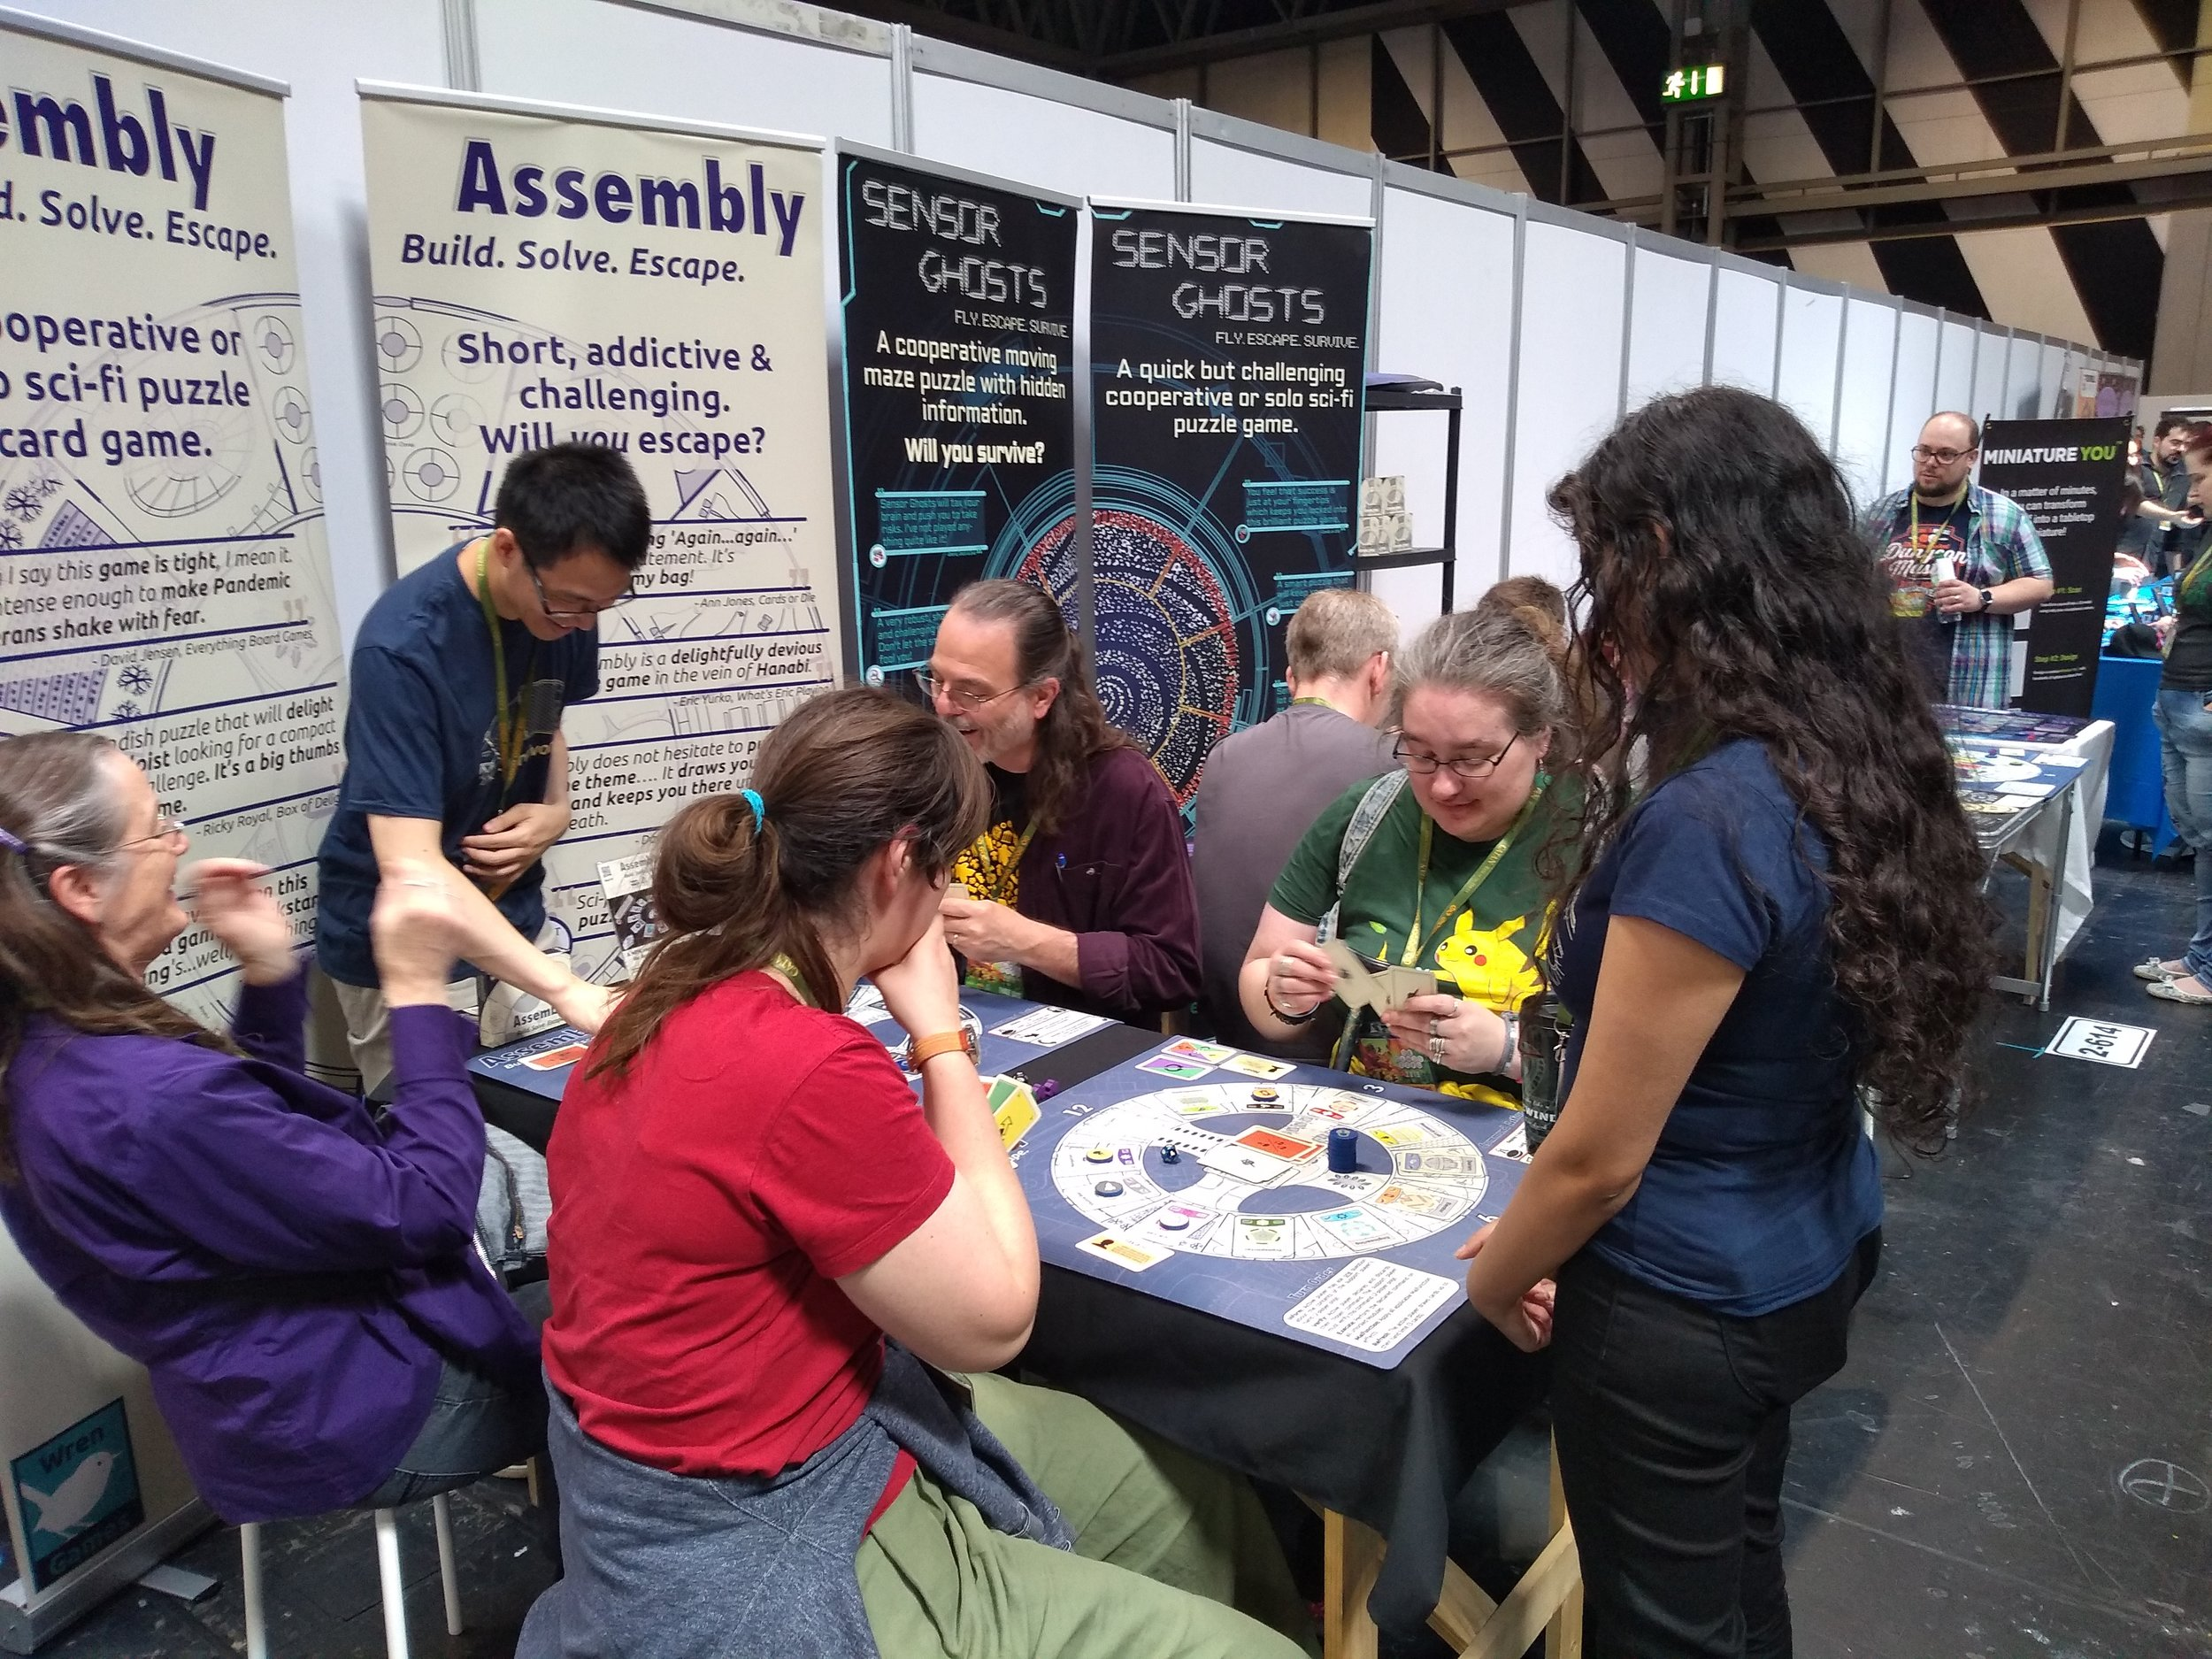 Assembly and Sensor Ghosts by Wren Games